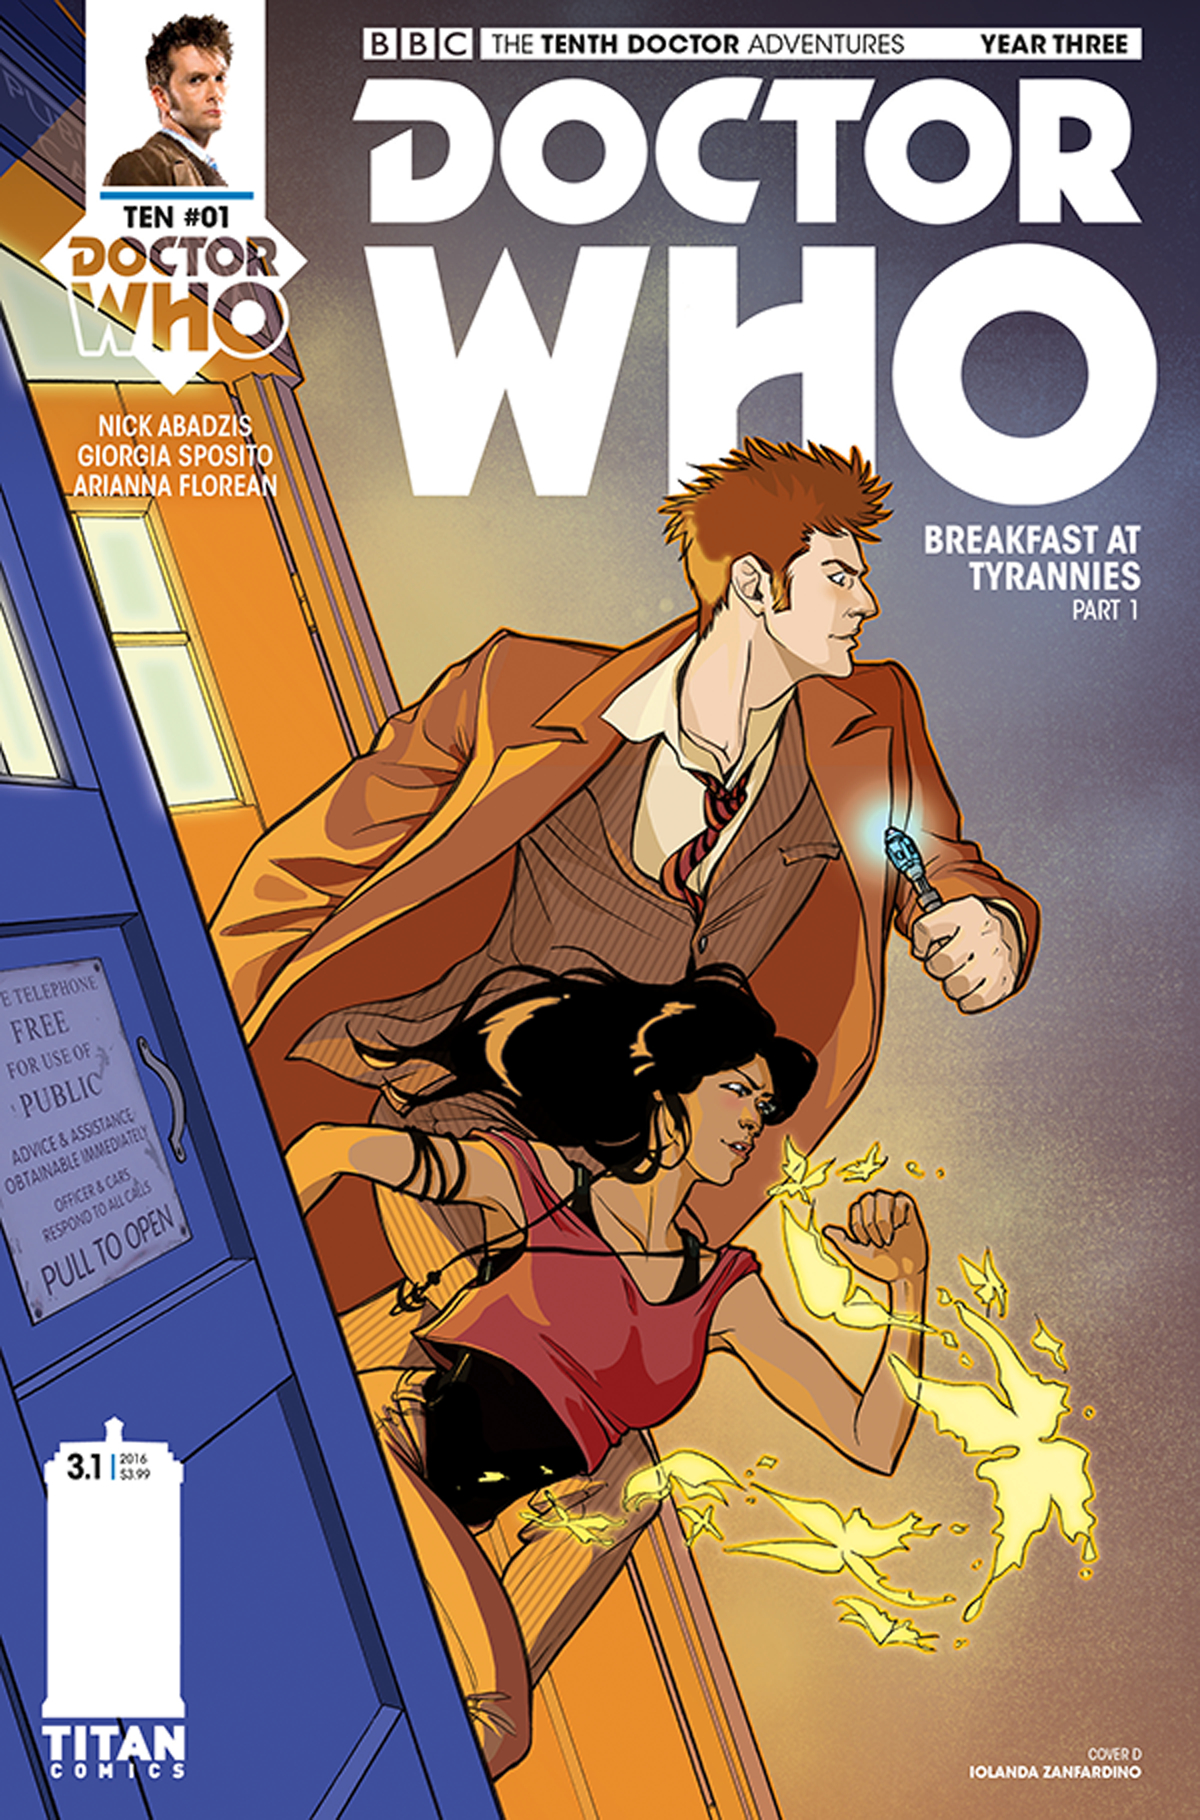 DOCTOR WHO 10TH YEAR THREE #1 CVR D ZANFARDINO